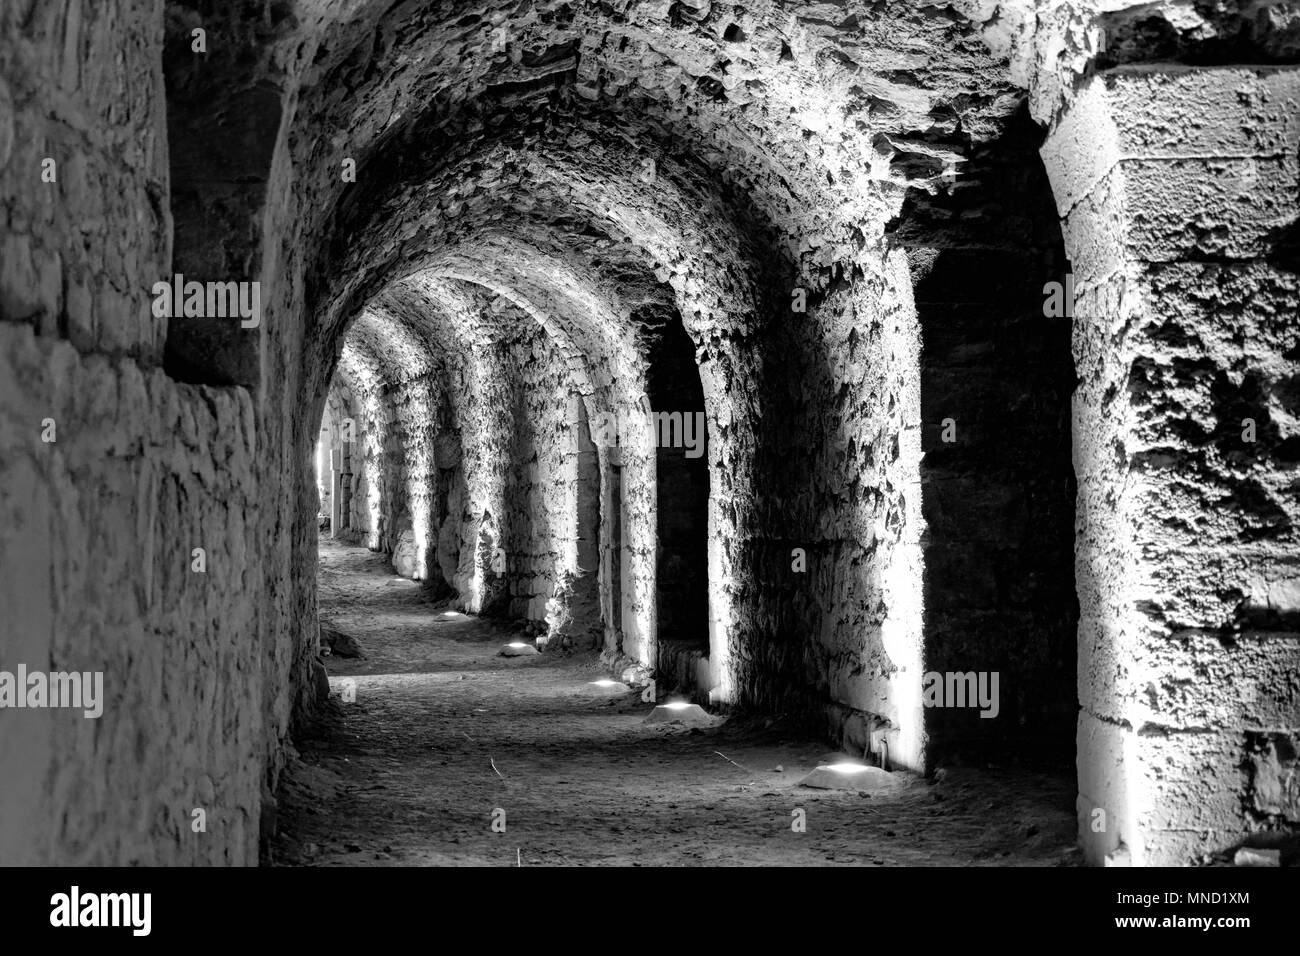 Arabic Culture Black and White Stock Photos & Images - Alamy